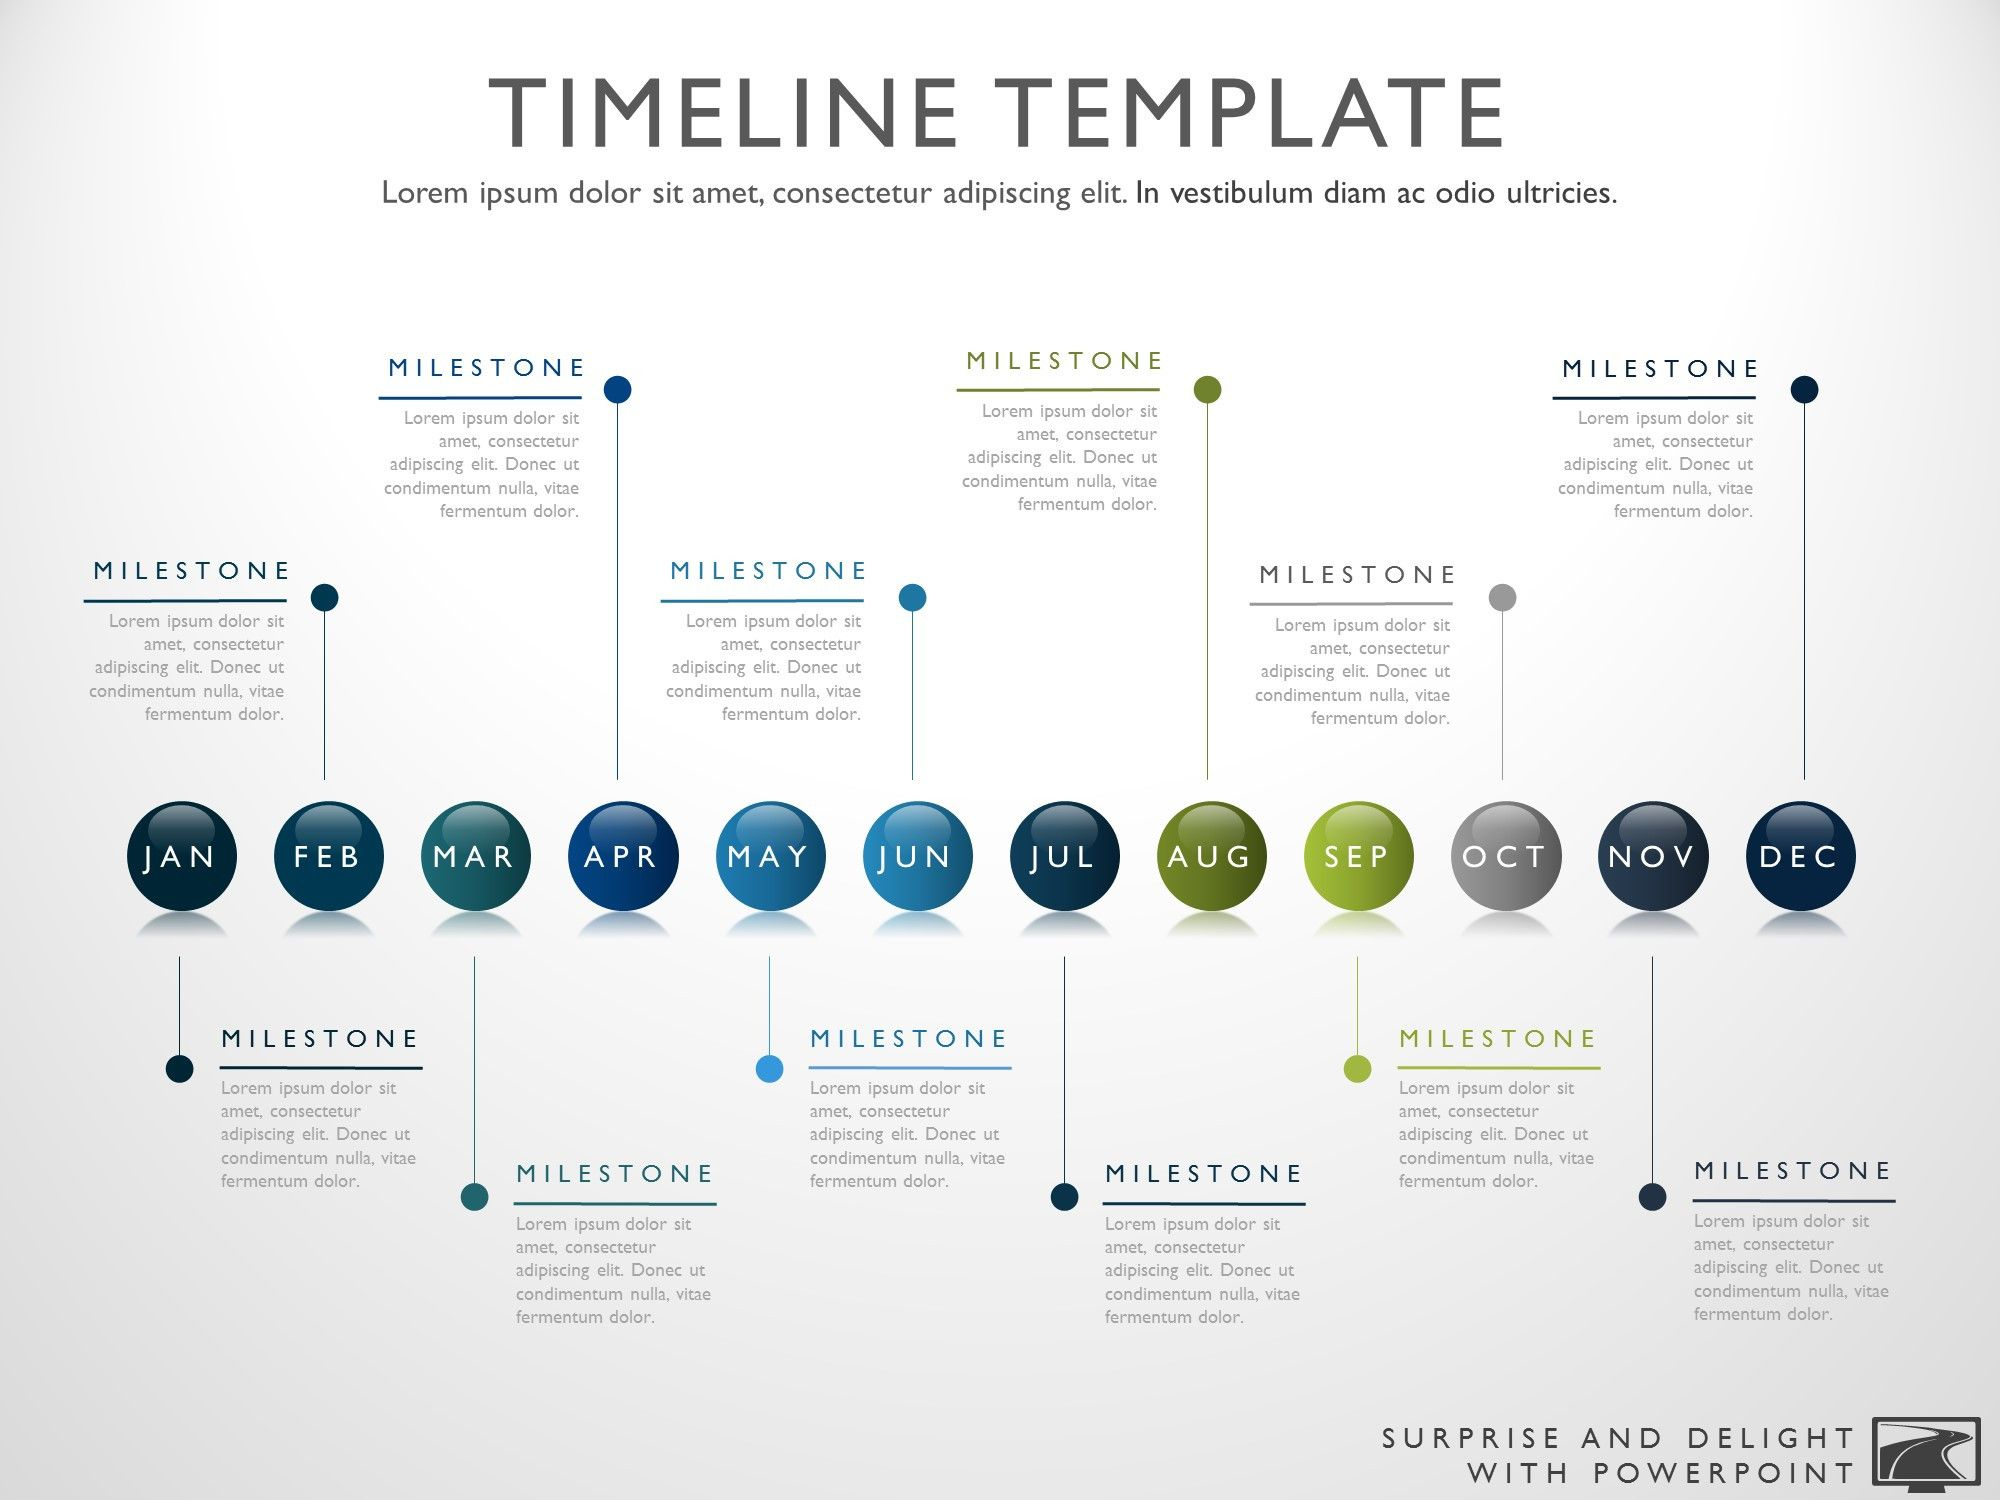 Timeline Template My Product Roadmap Remodeling Tools - Roadmap timeline template